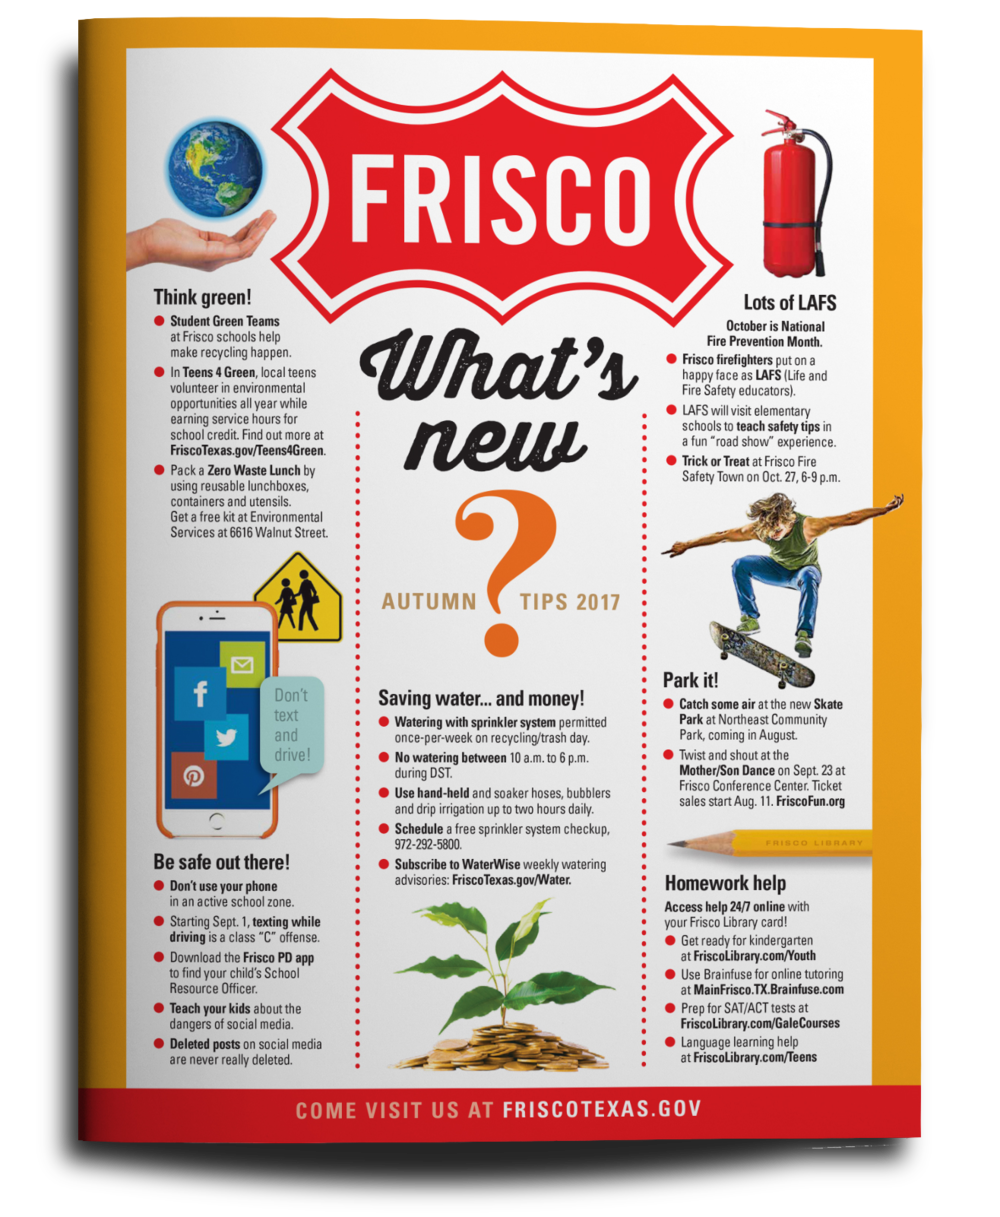 Frisco-Infographic-Ad.png